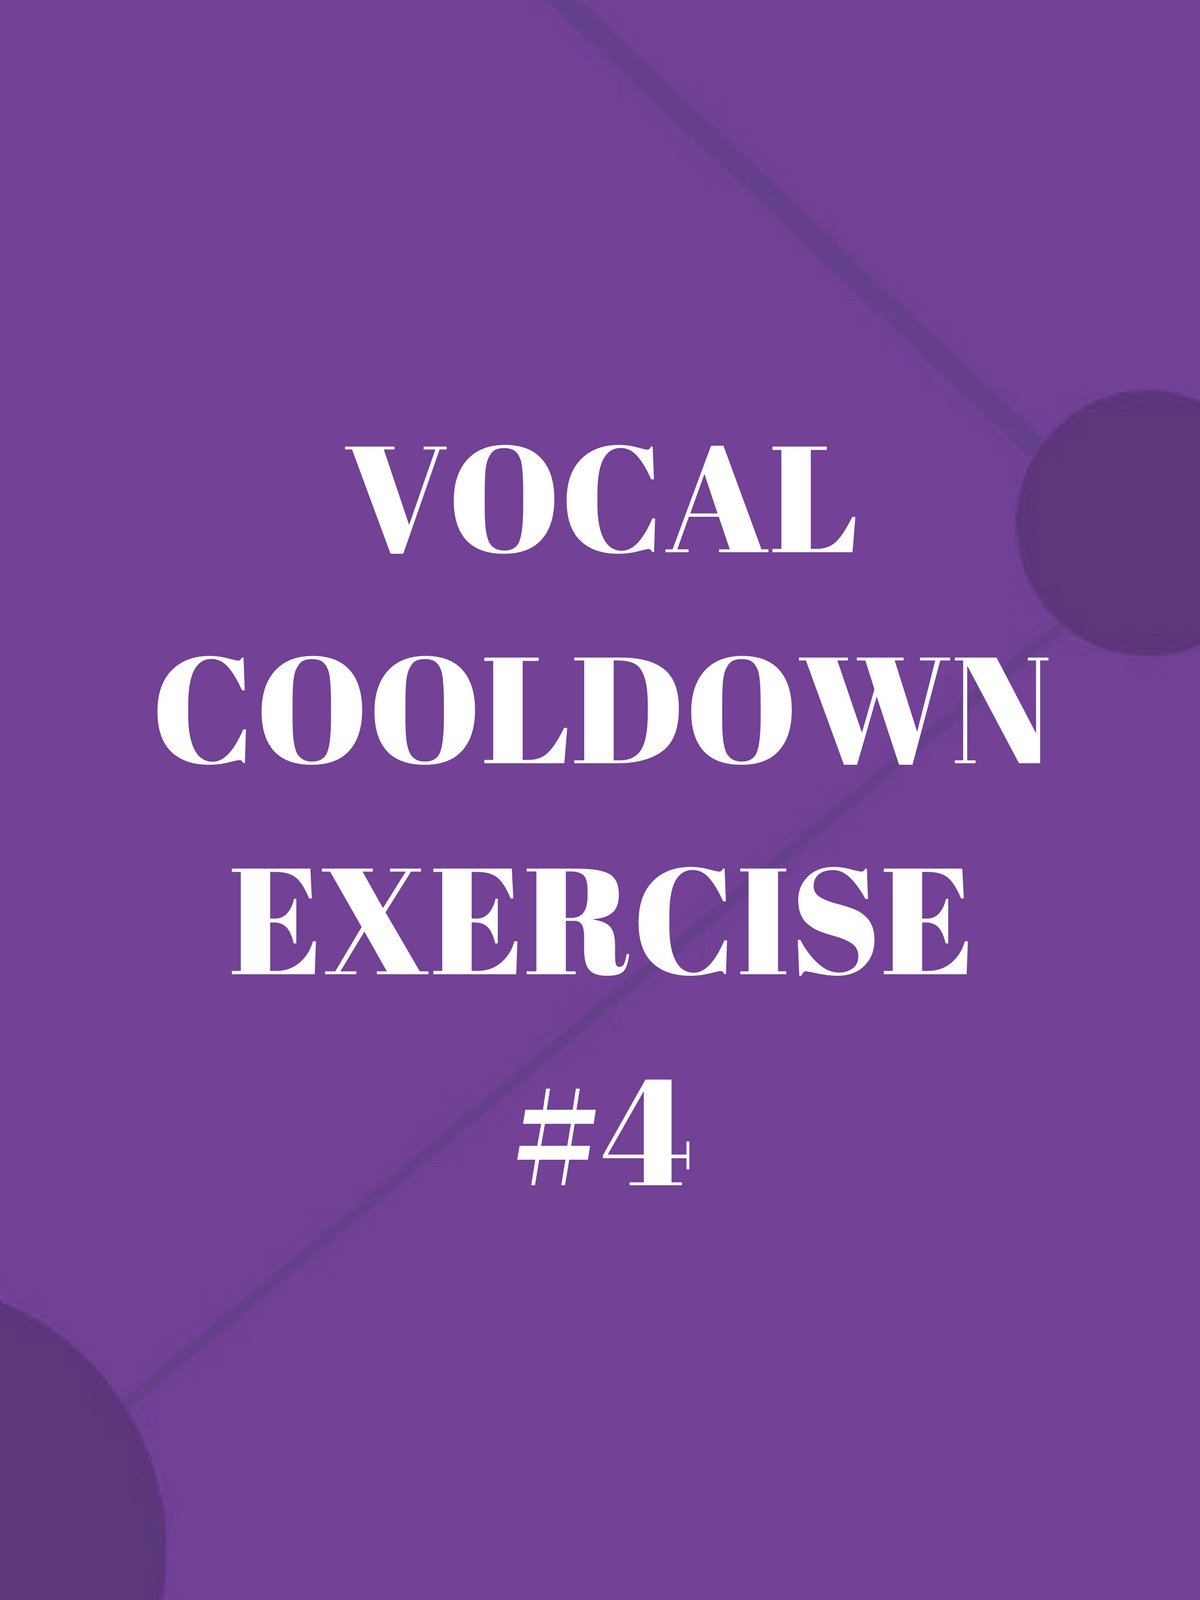 Vocal Cooldown Exercise #4